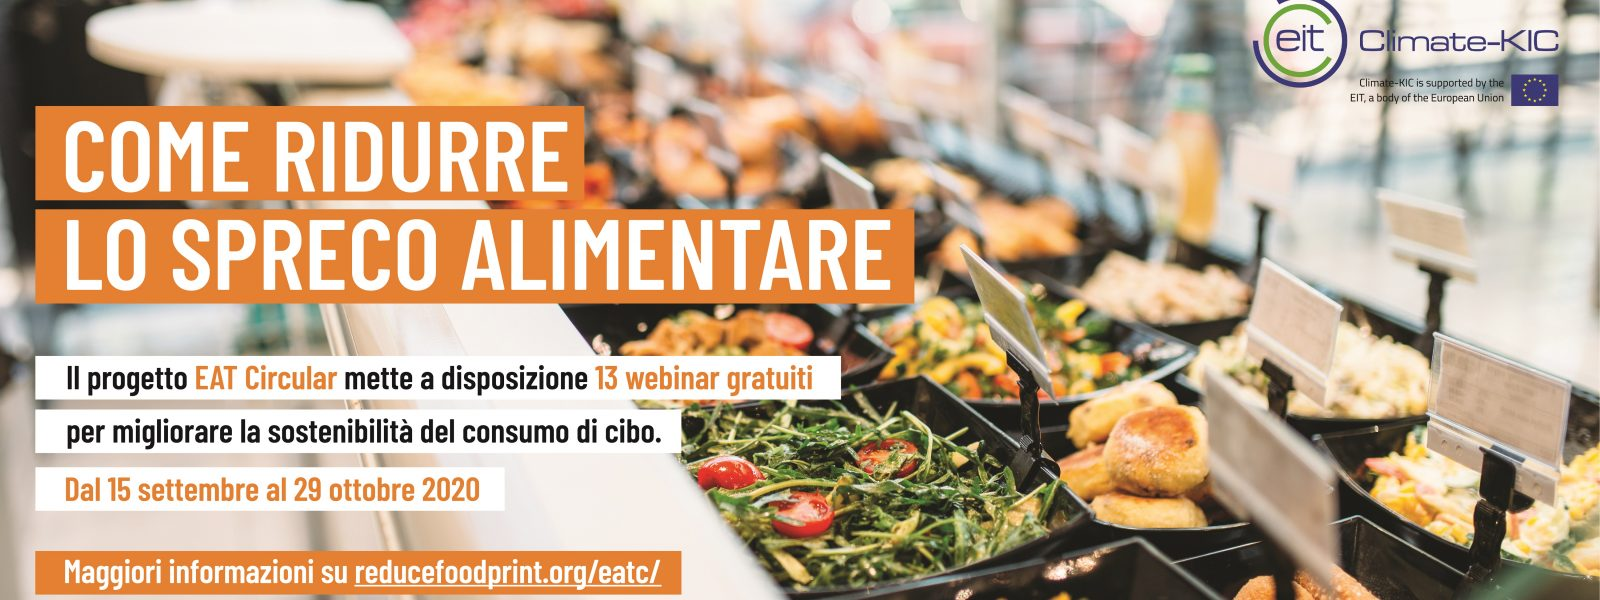 EAT-Circular - Save it for Good! - Evento del 15 settembre